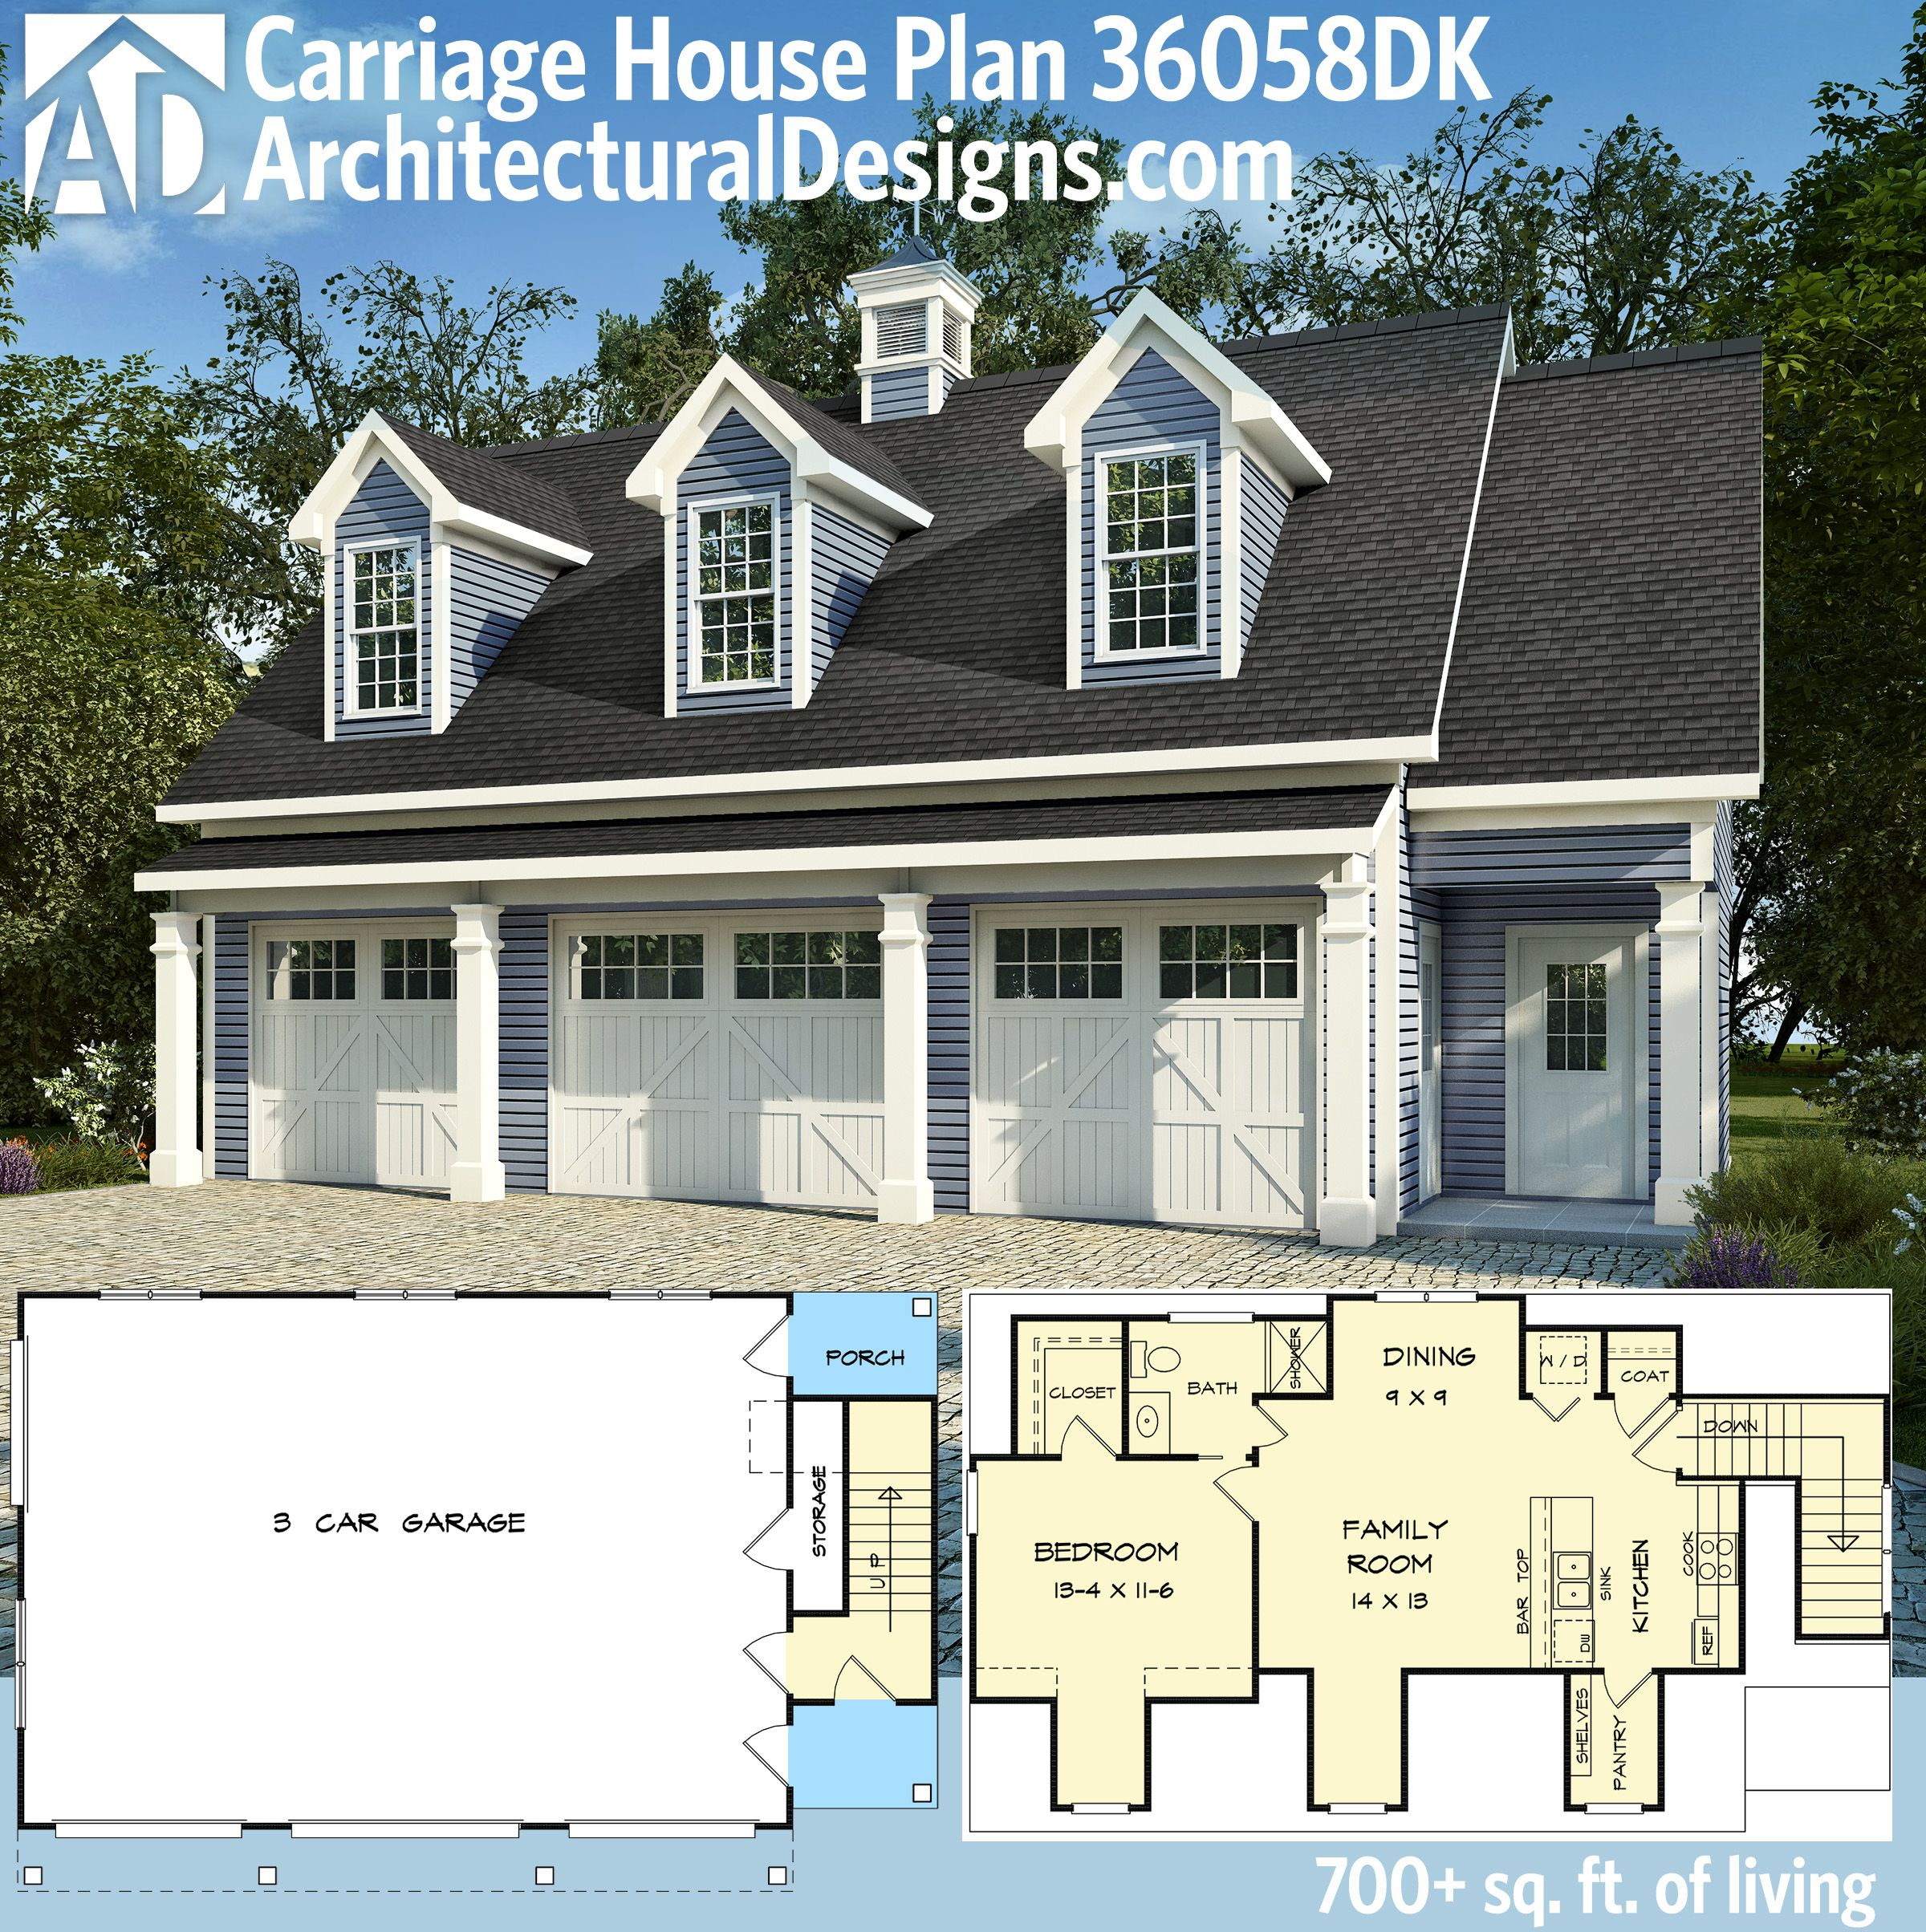 Plan 36058dk 3 Car Carriage House Plan With 3 Dormers: carriage house floor plans